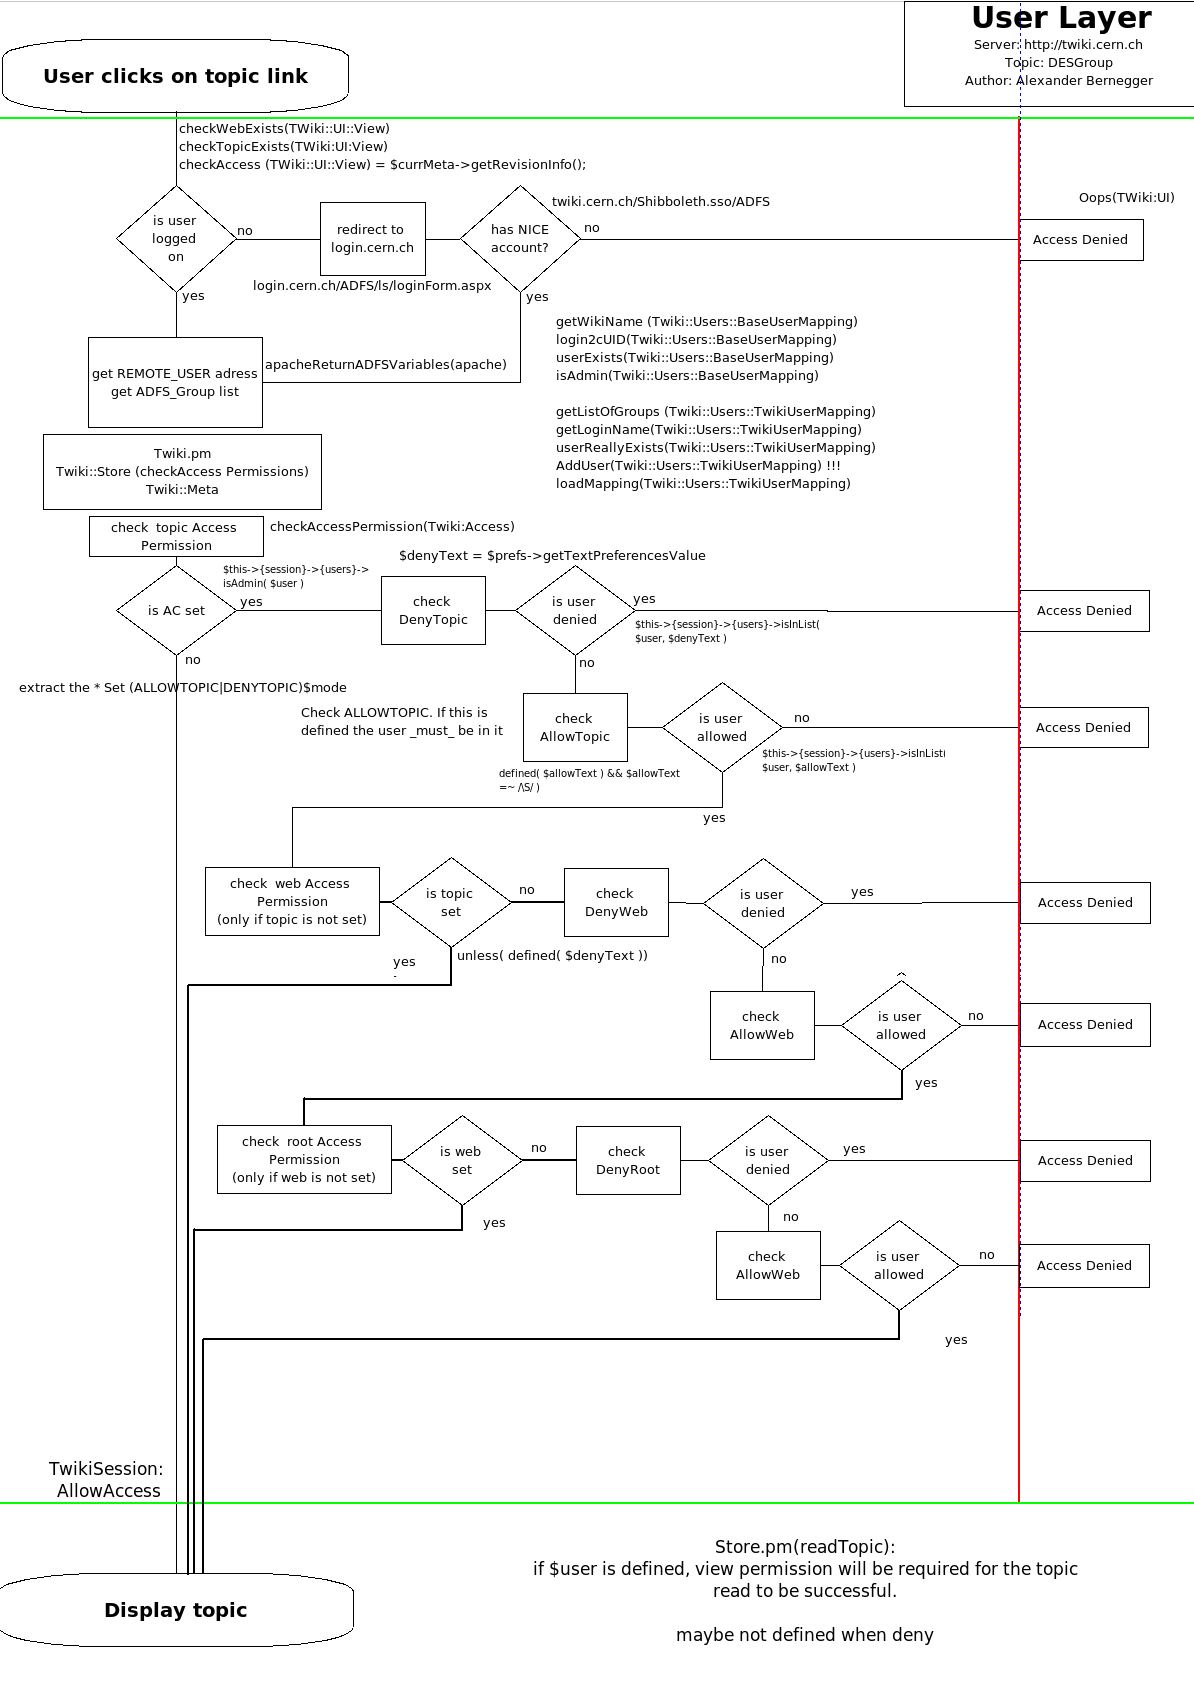 flowchart_twiki_topic_access.png